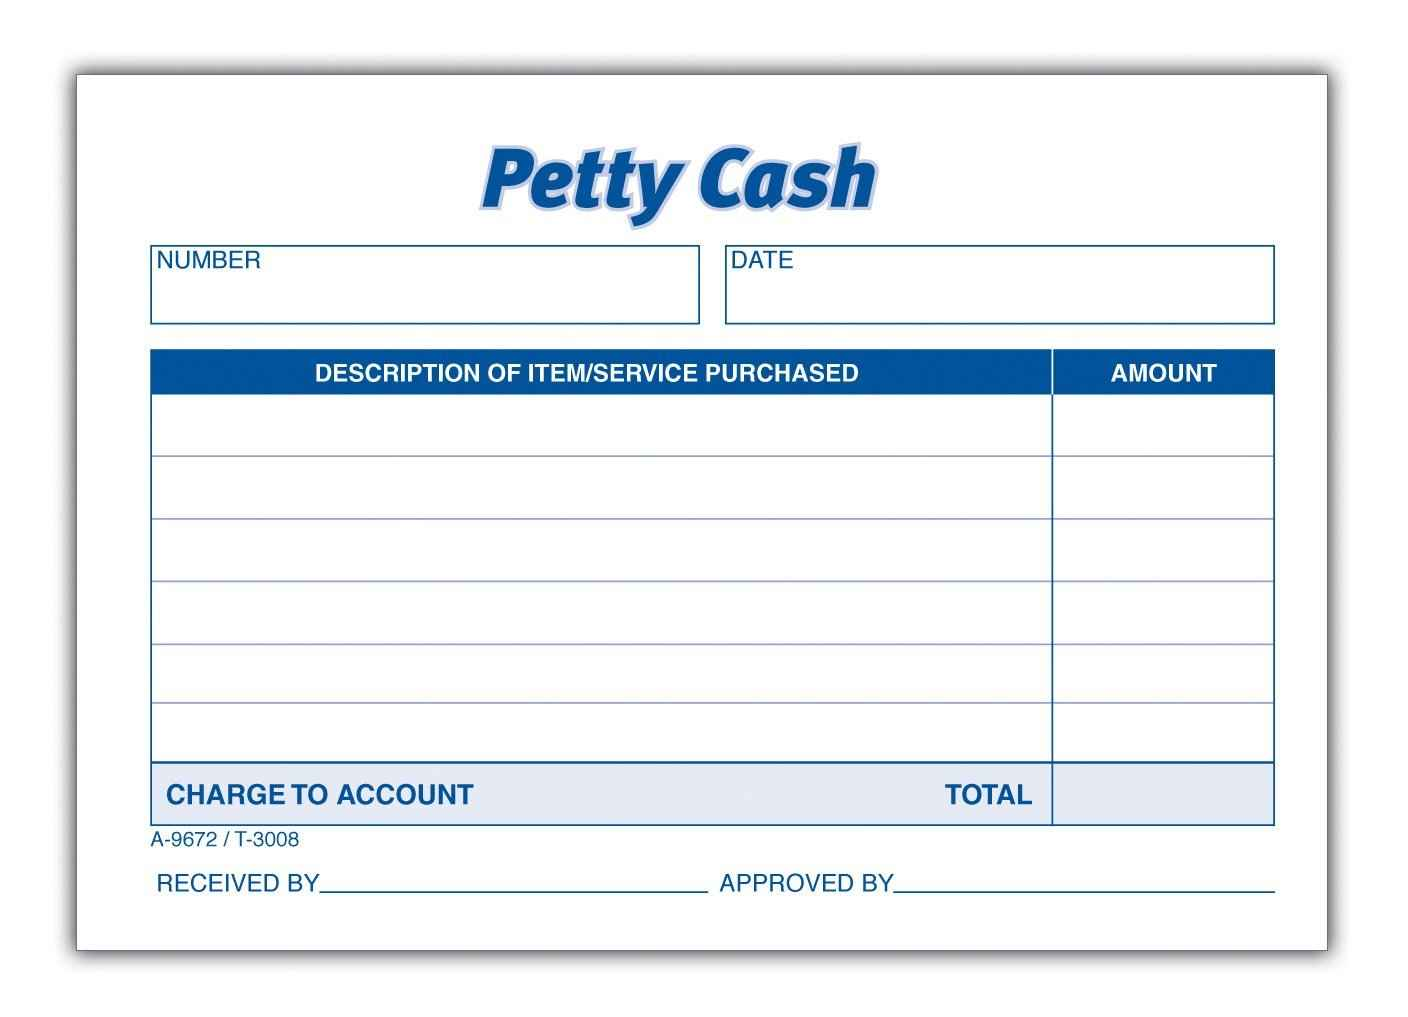 Petty Cash Book – Example of Petty Cash Voucher